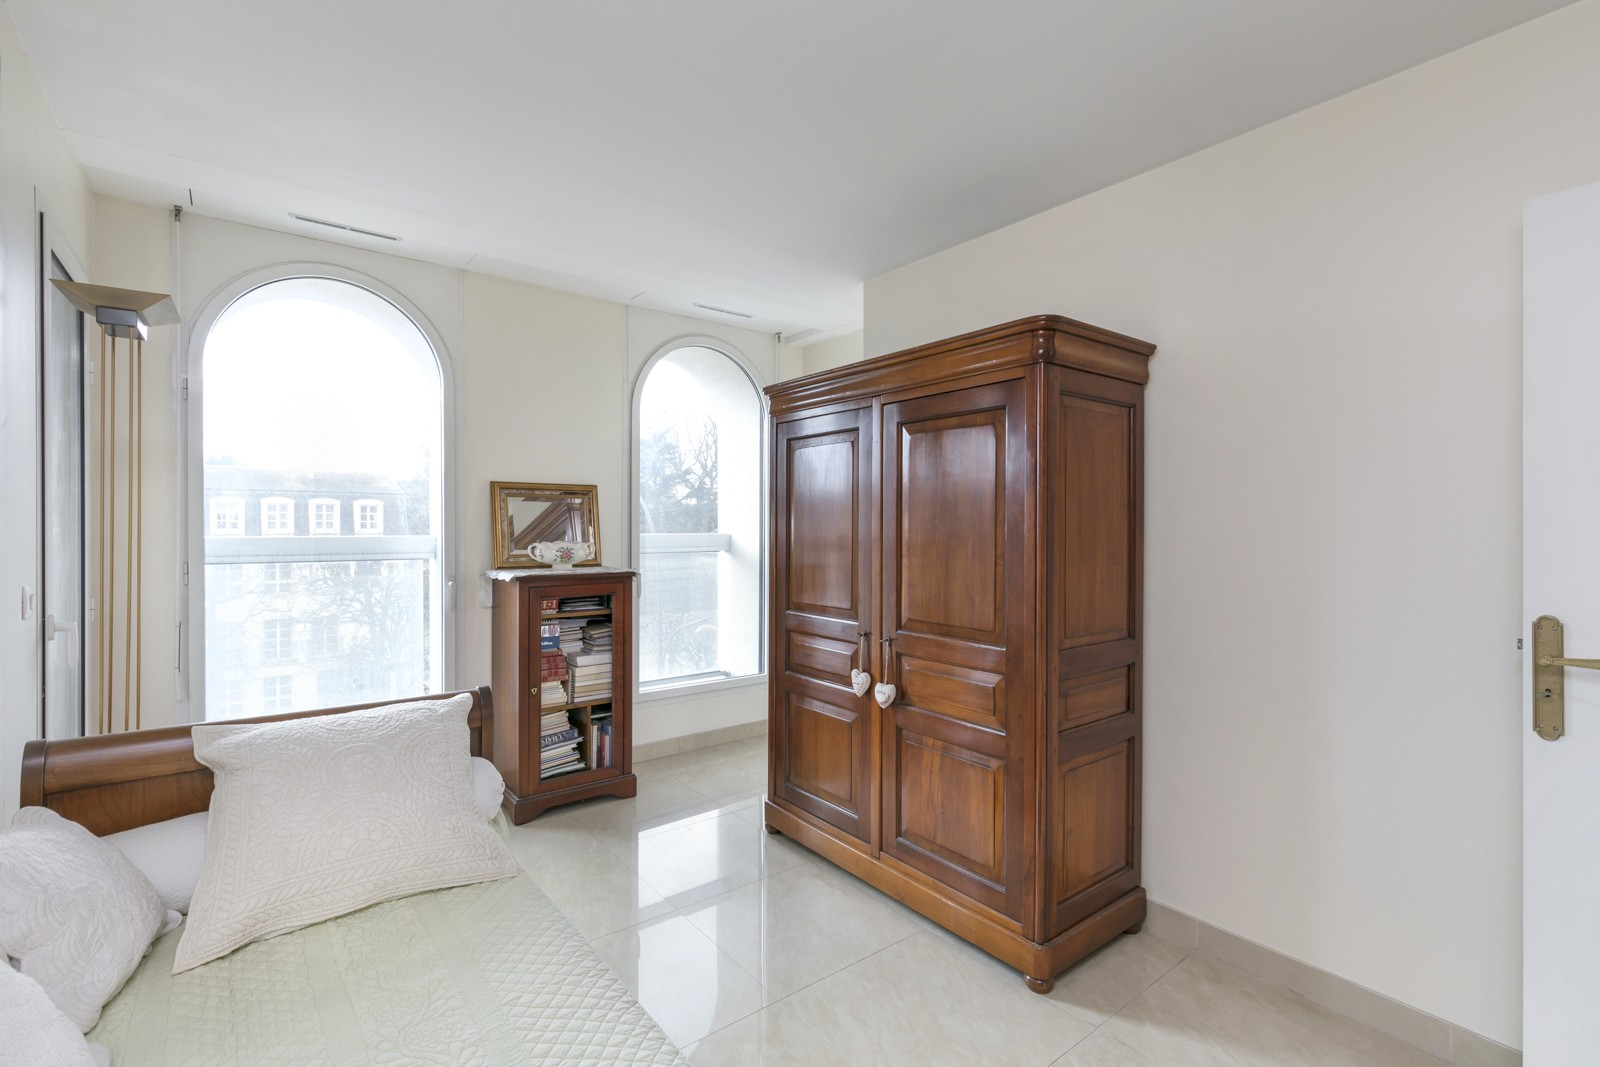 EXCLUSIVE LE CHESNAY NEAR VERSAILLES 1,173 SQ FT APARTMENT, 3-4 BEDROOMS, GOOD CONDITION